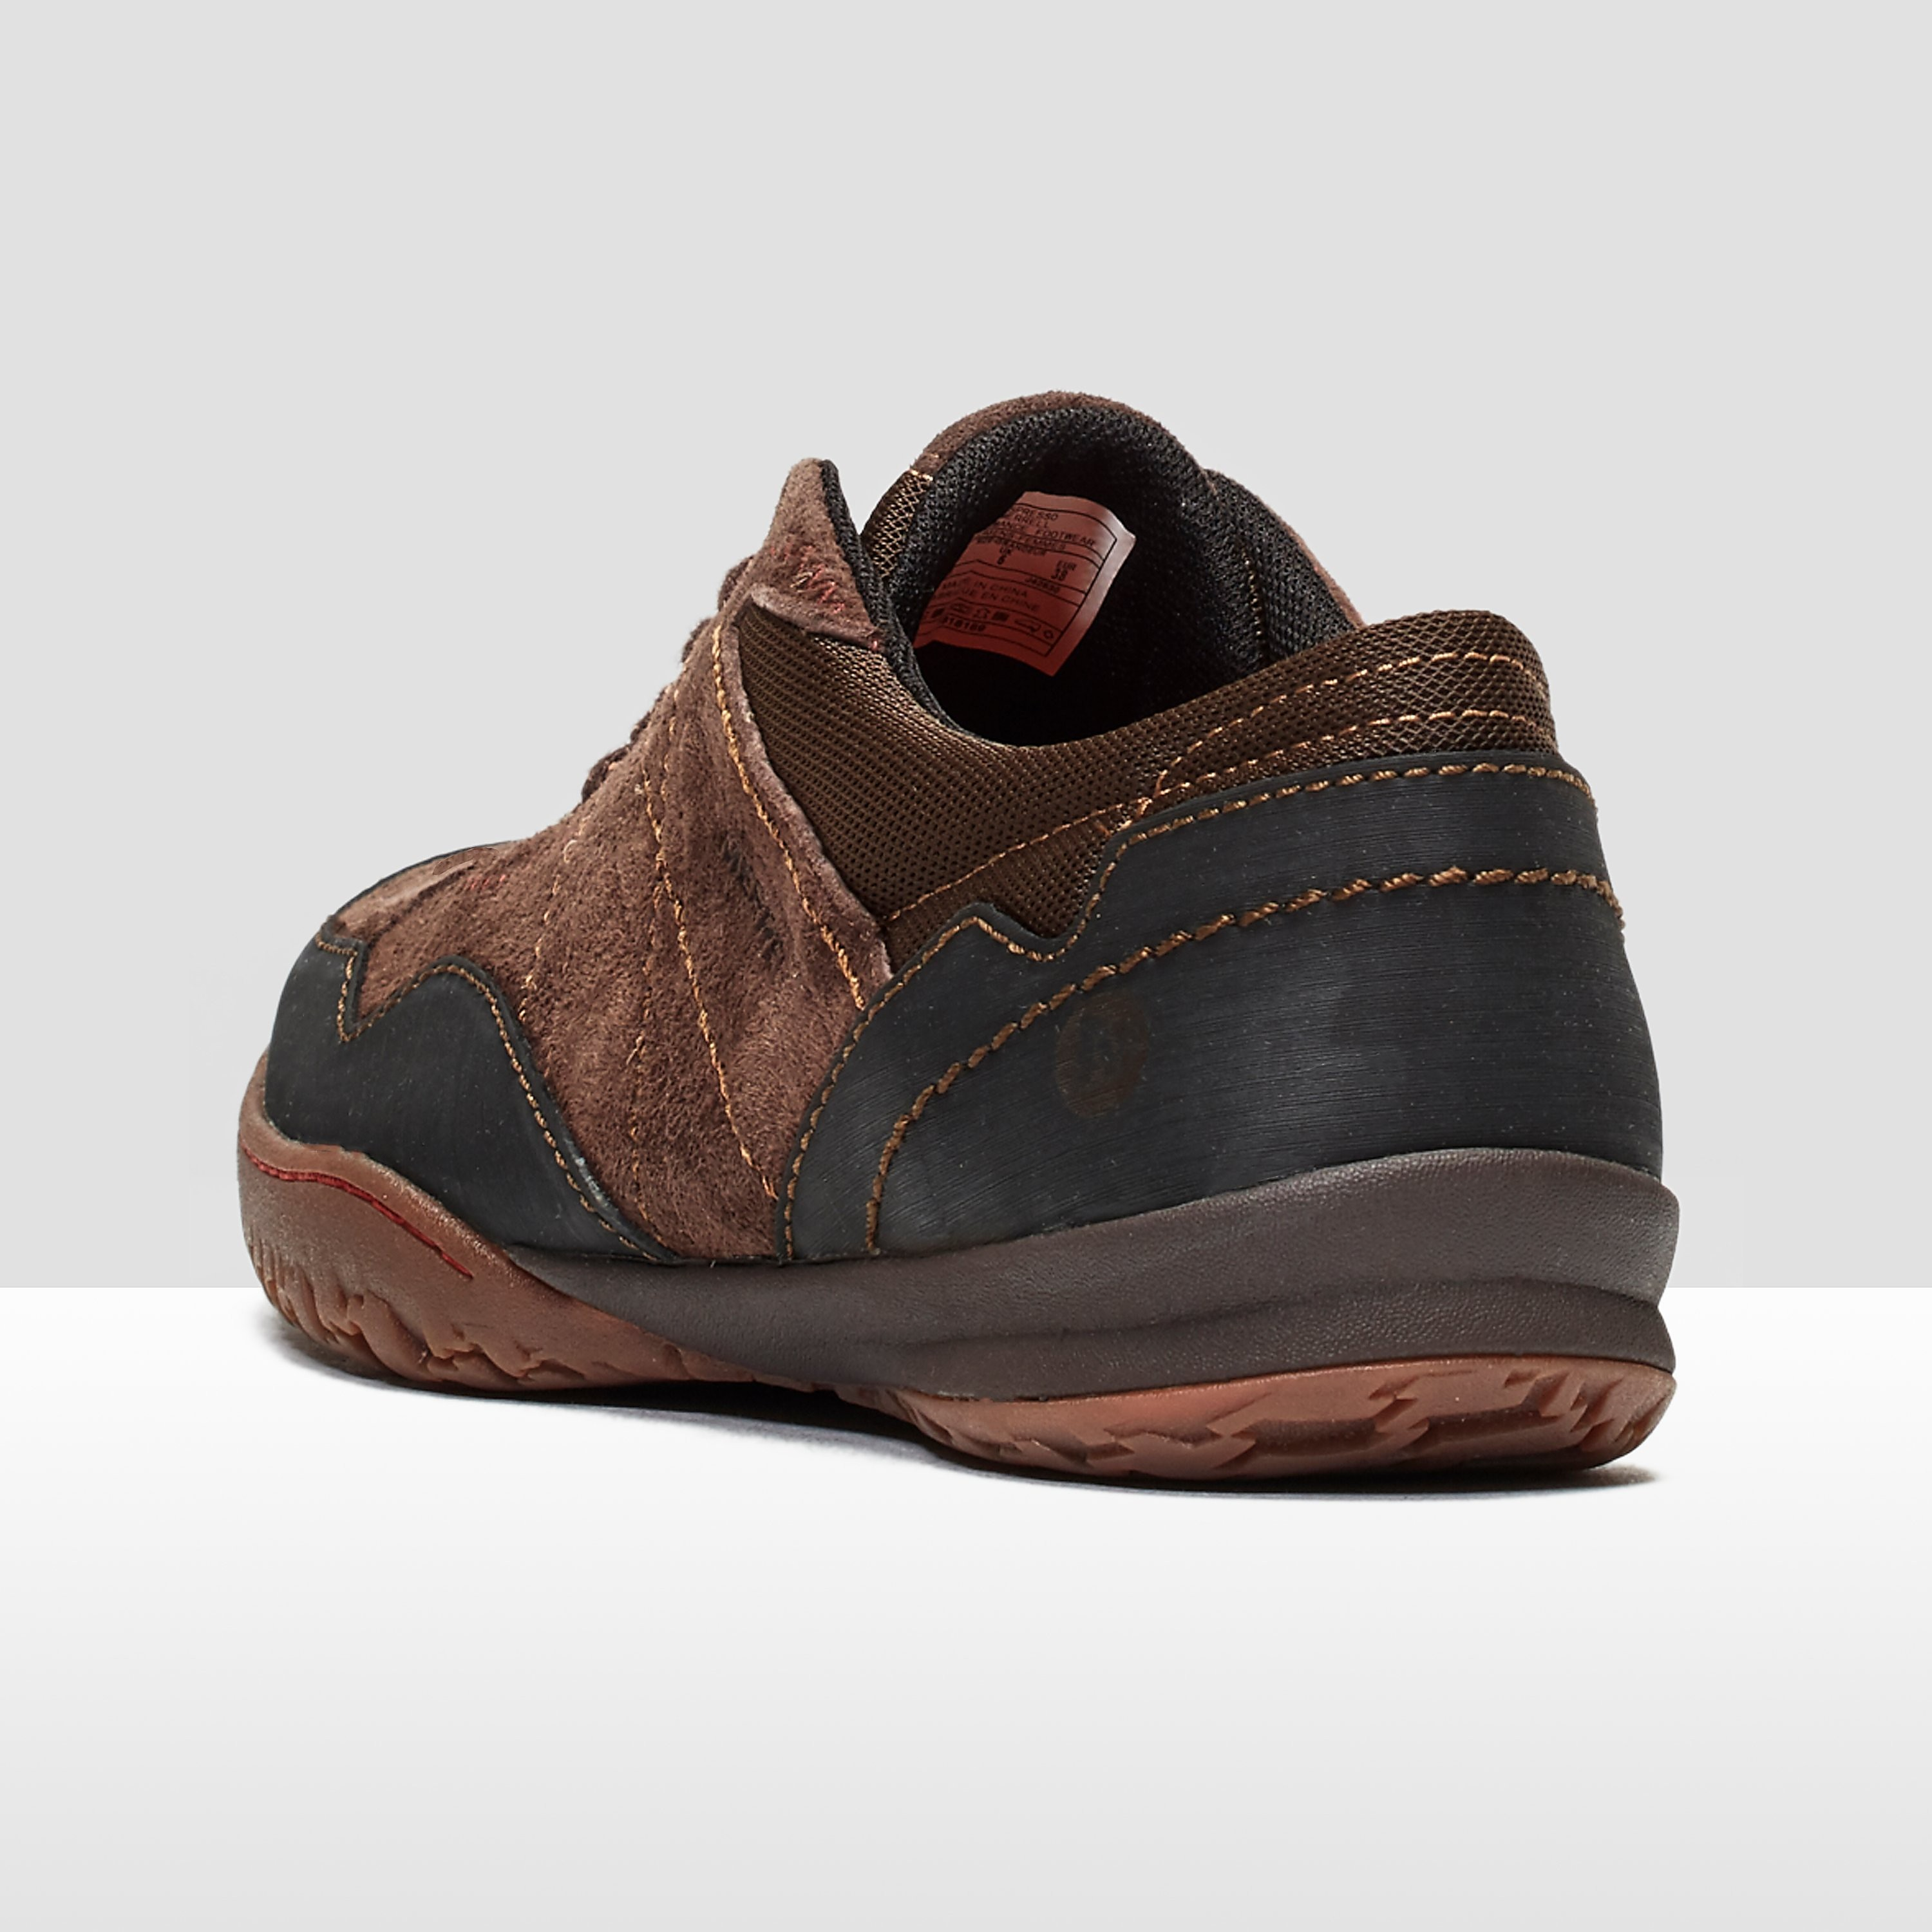 Merrell Albany Lace Women's Casual Shoes